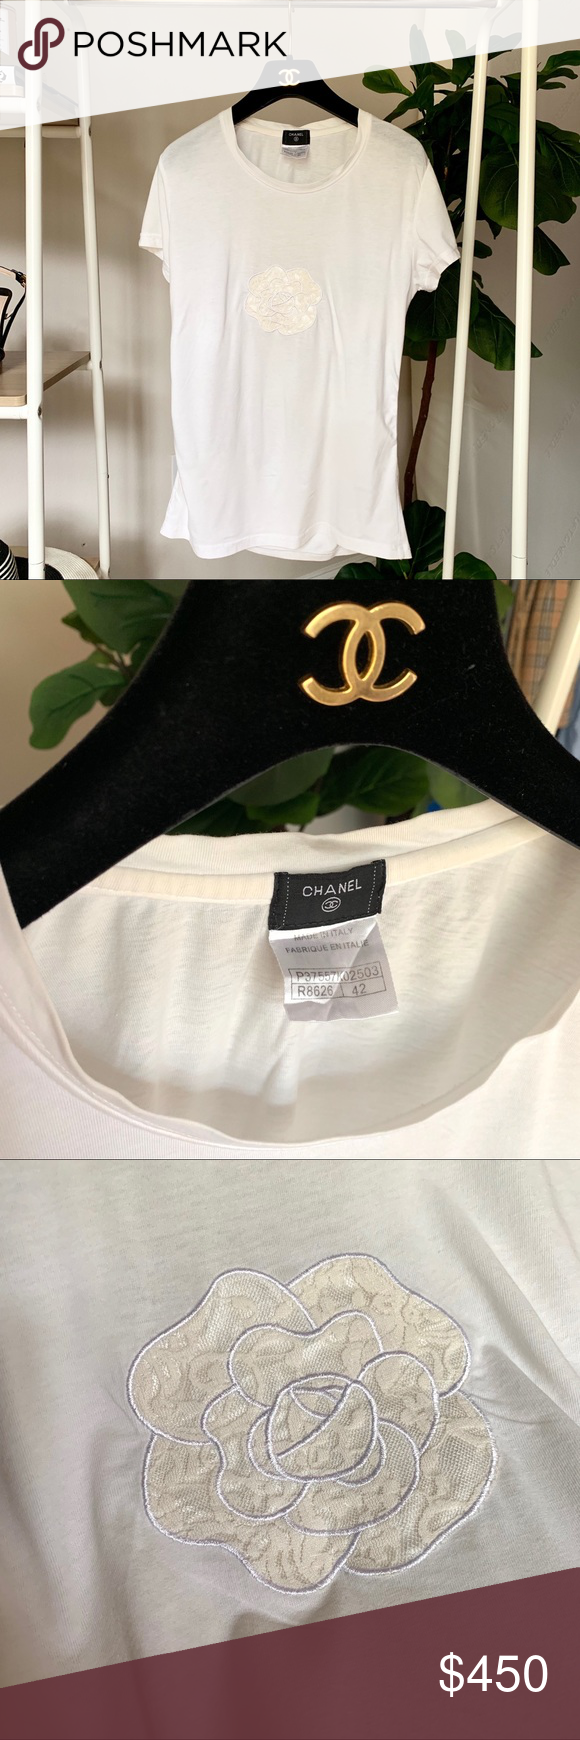 ⚡️WKND SALE⚡️CHANEL Lace Camellia Logo White Tee (With